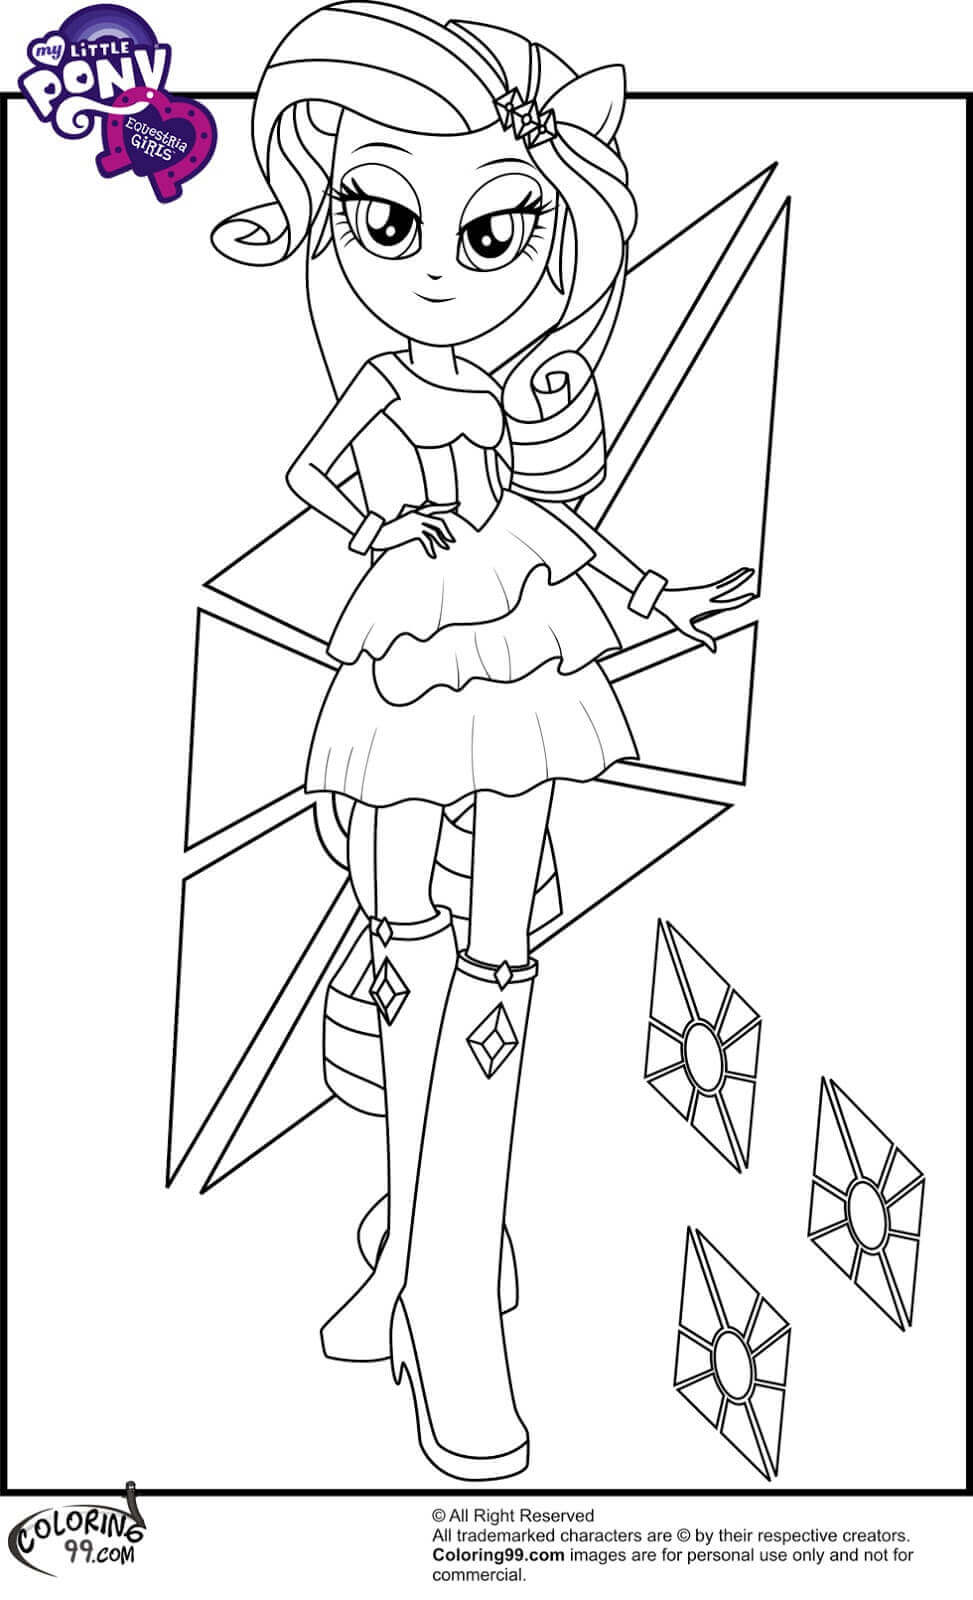 rarity coloring page - Equestria Girls Coloring Pages